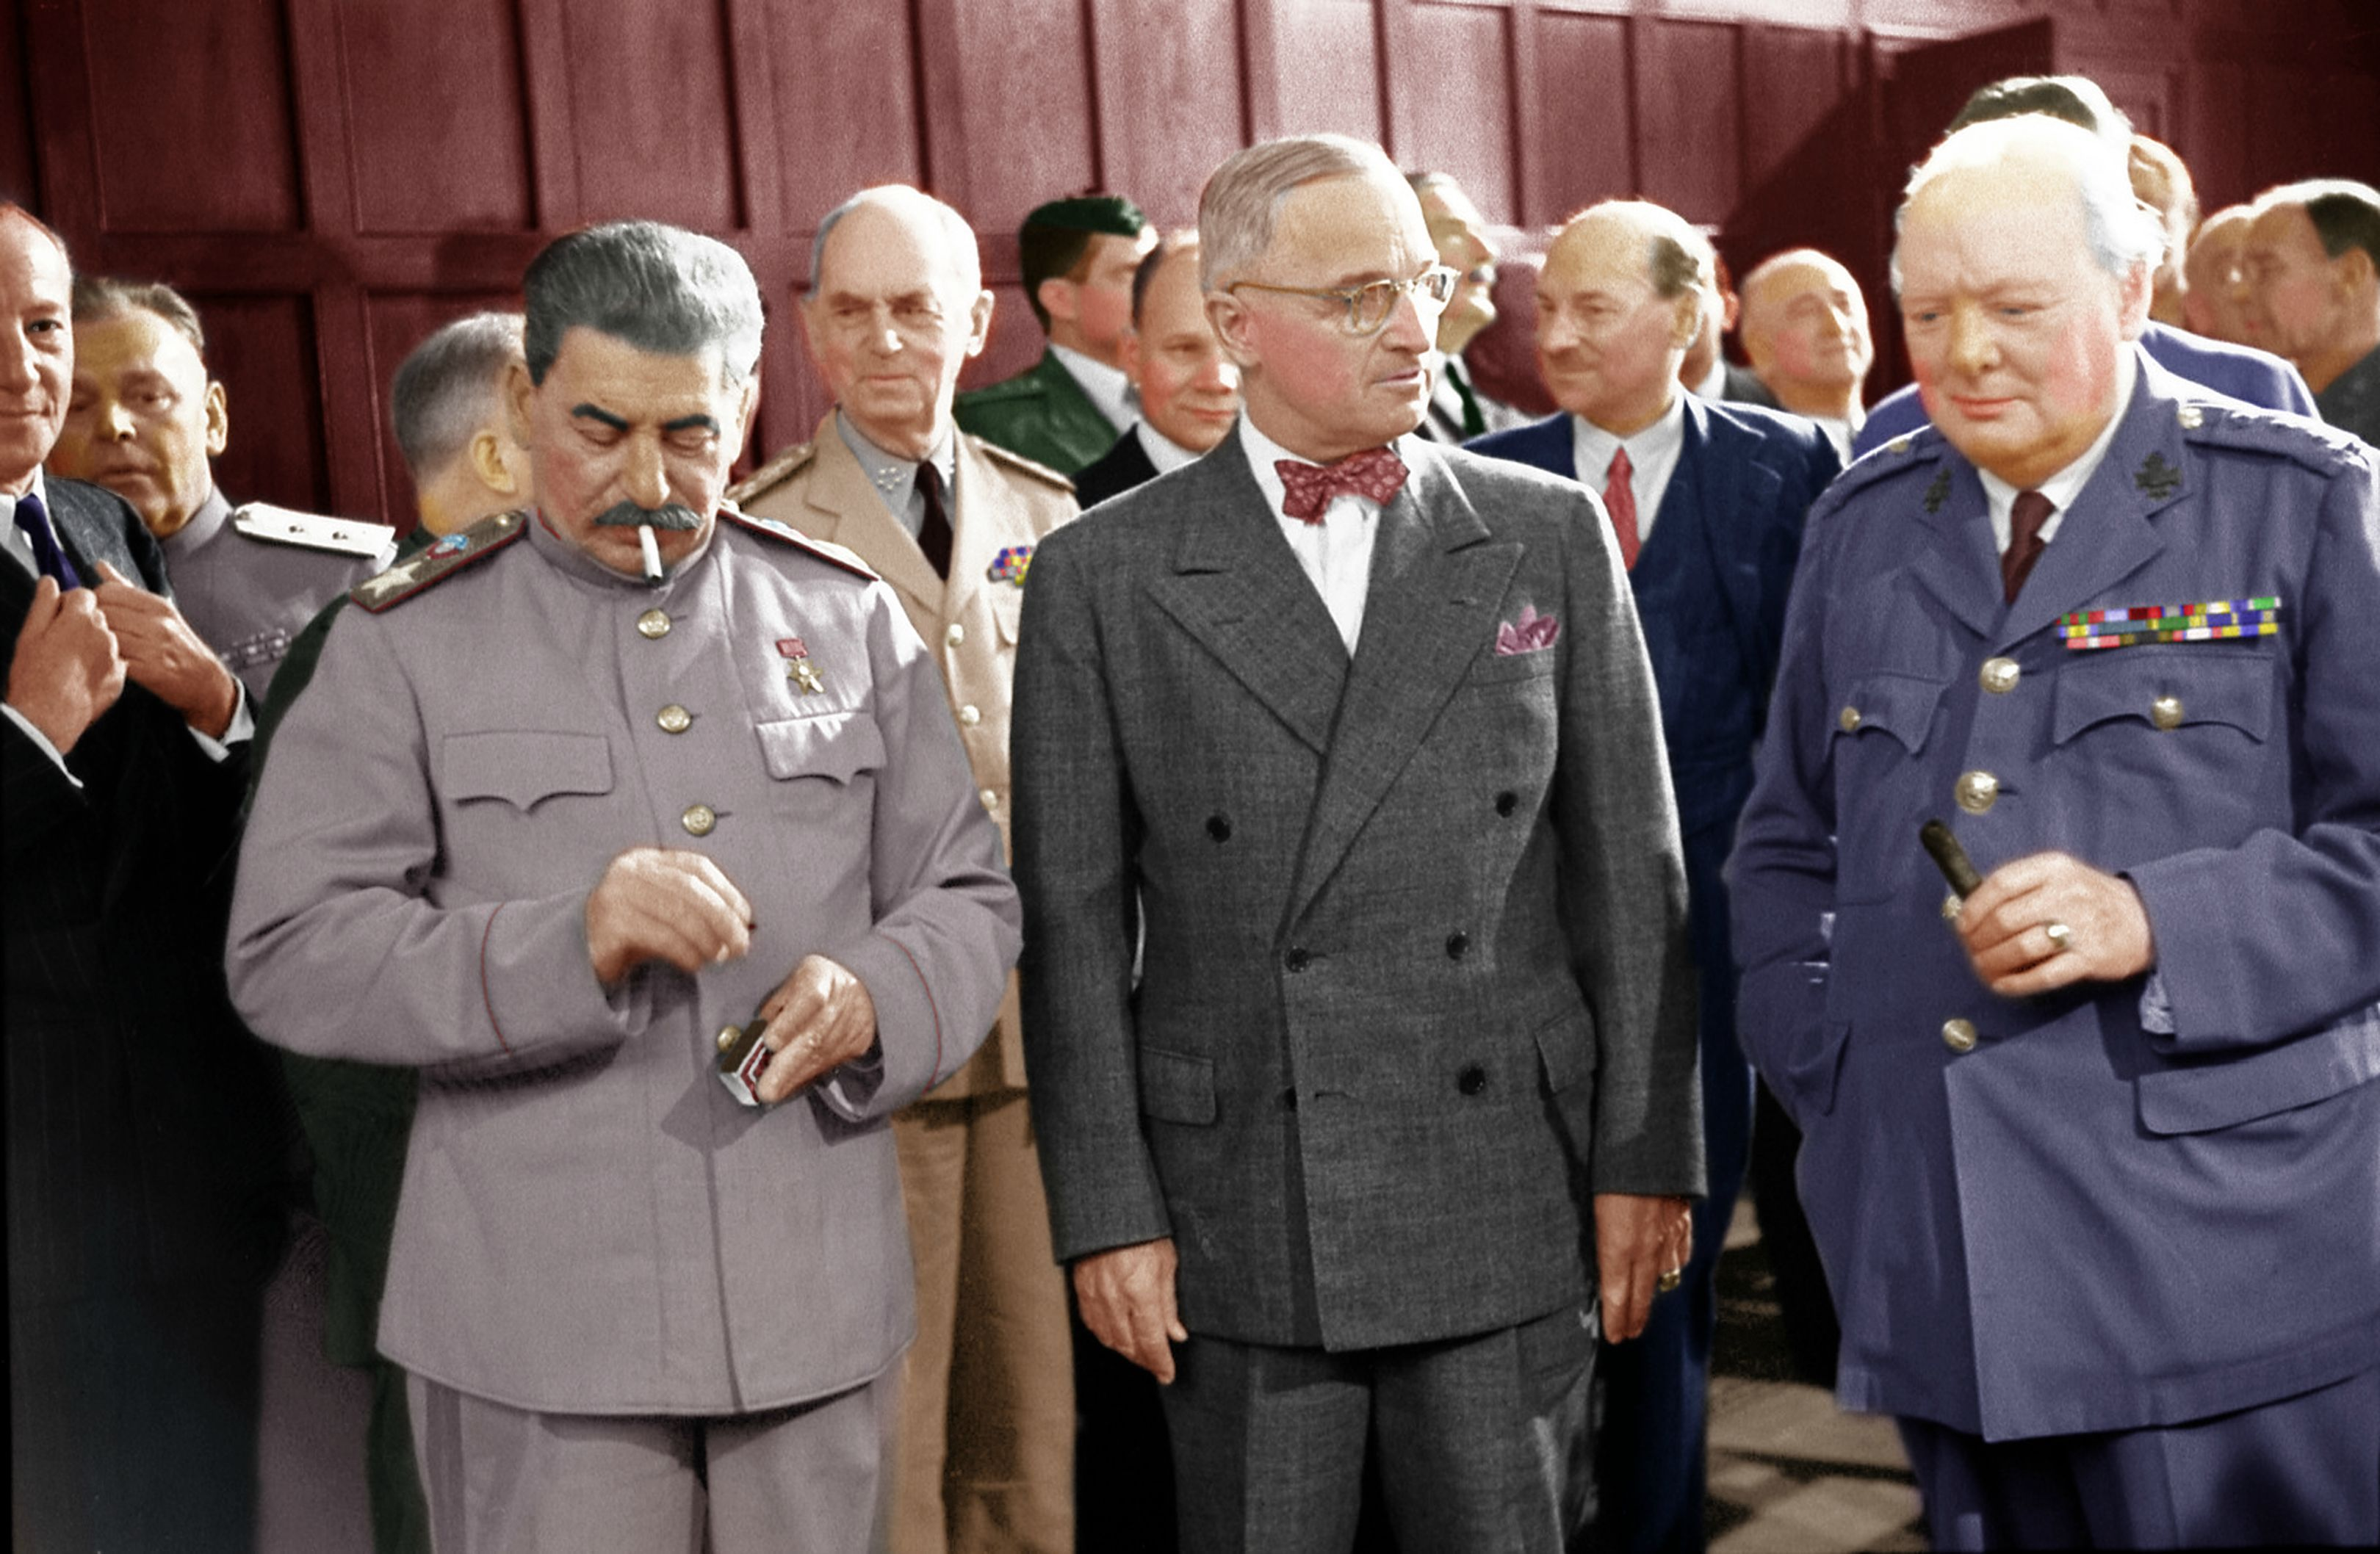 potsdam conference The leaders of the victorious countries met once more at potsdam in july, 1945  franklin d roosevelt, who had died in april, 1945, had been replaced by the.